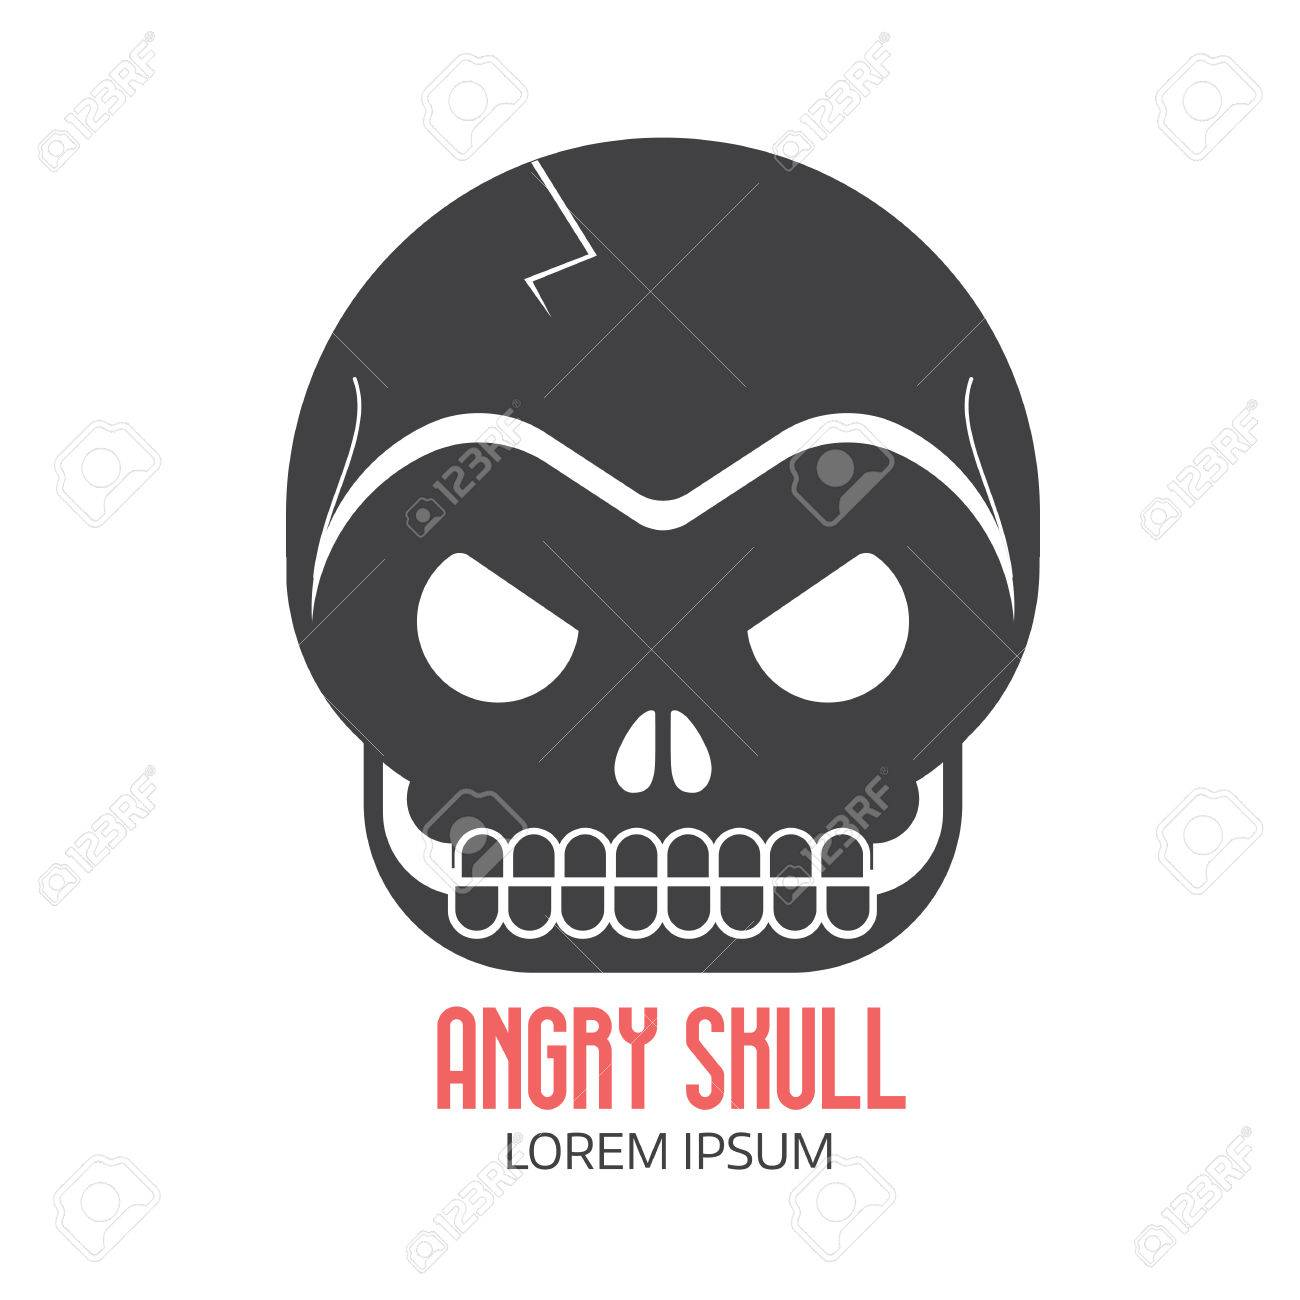 angry human skull logo or label template in black and white